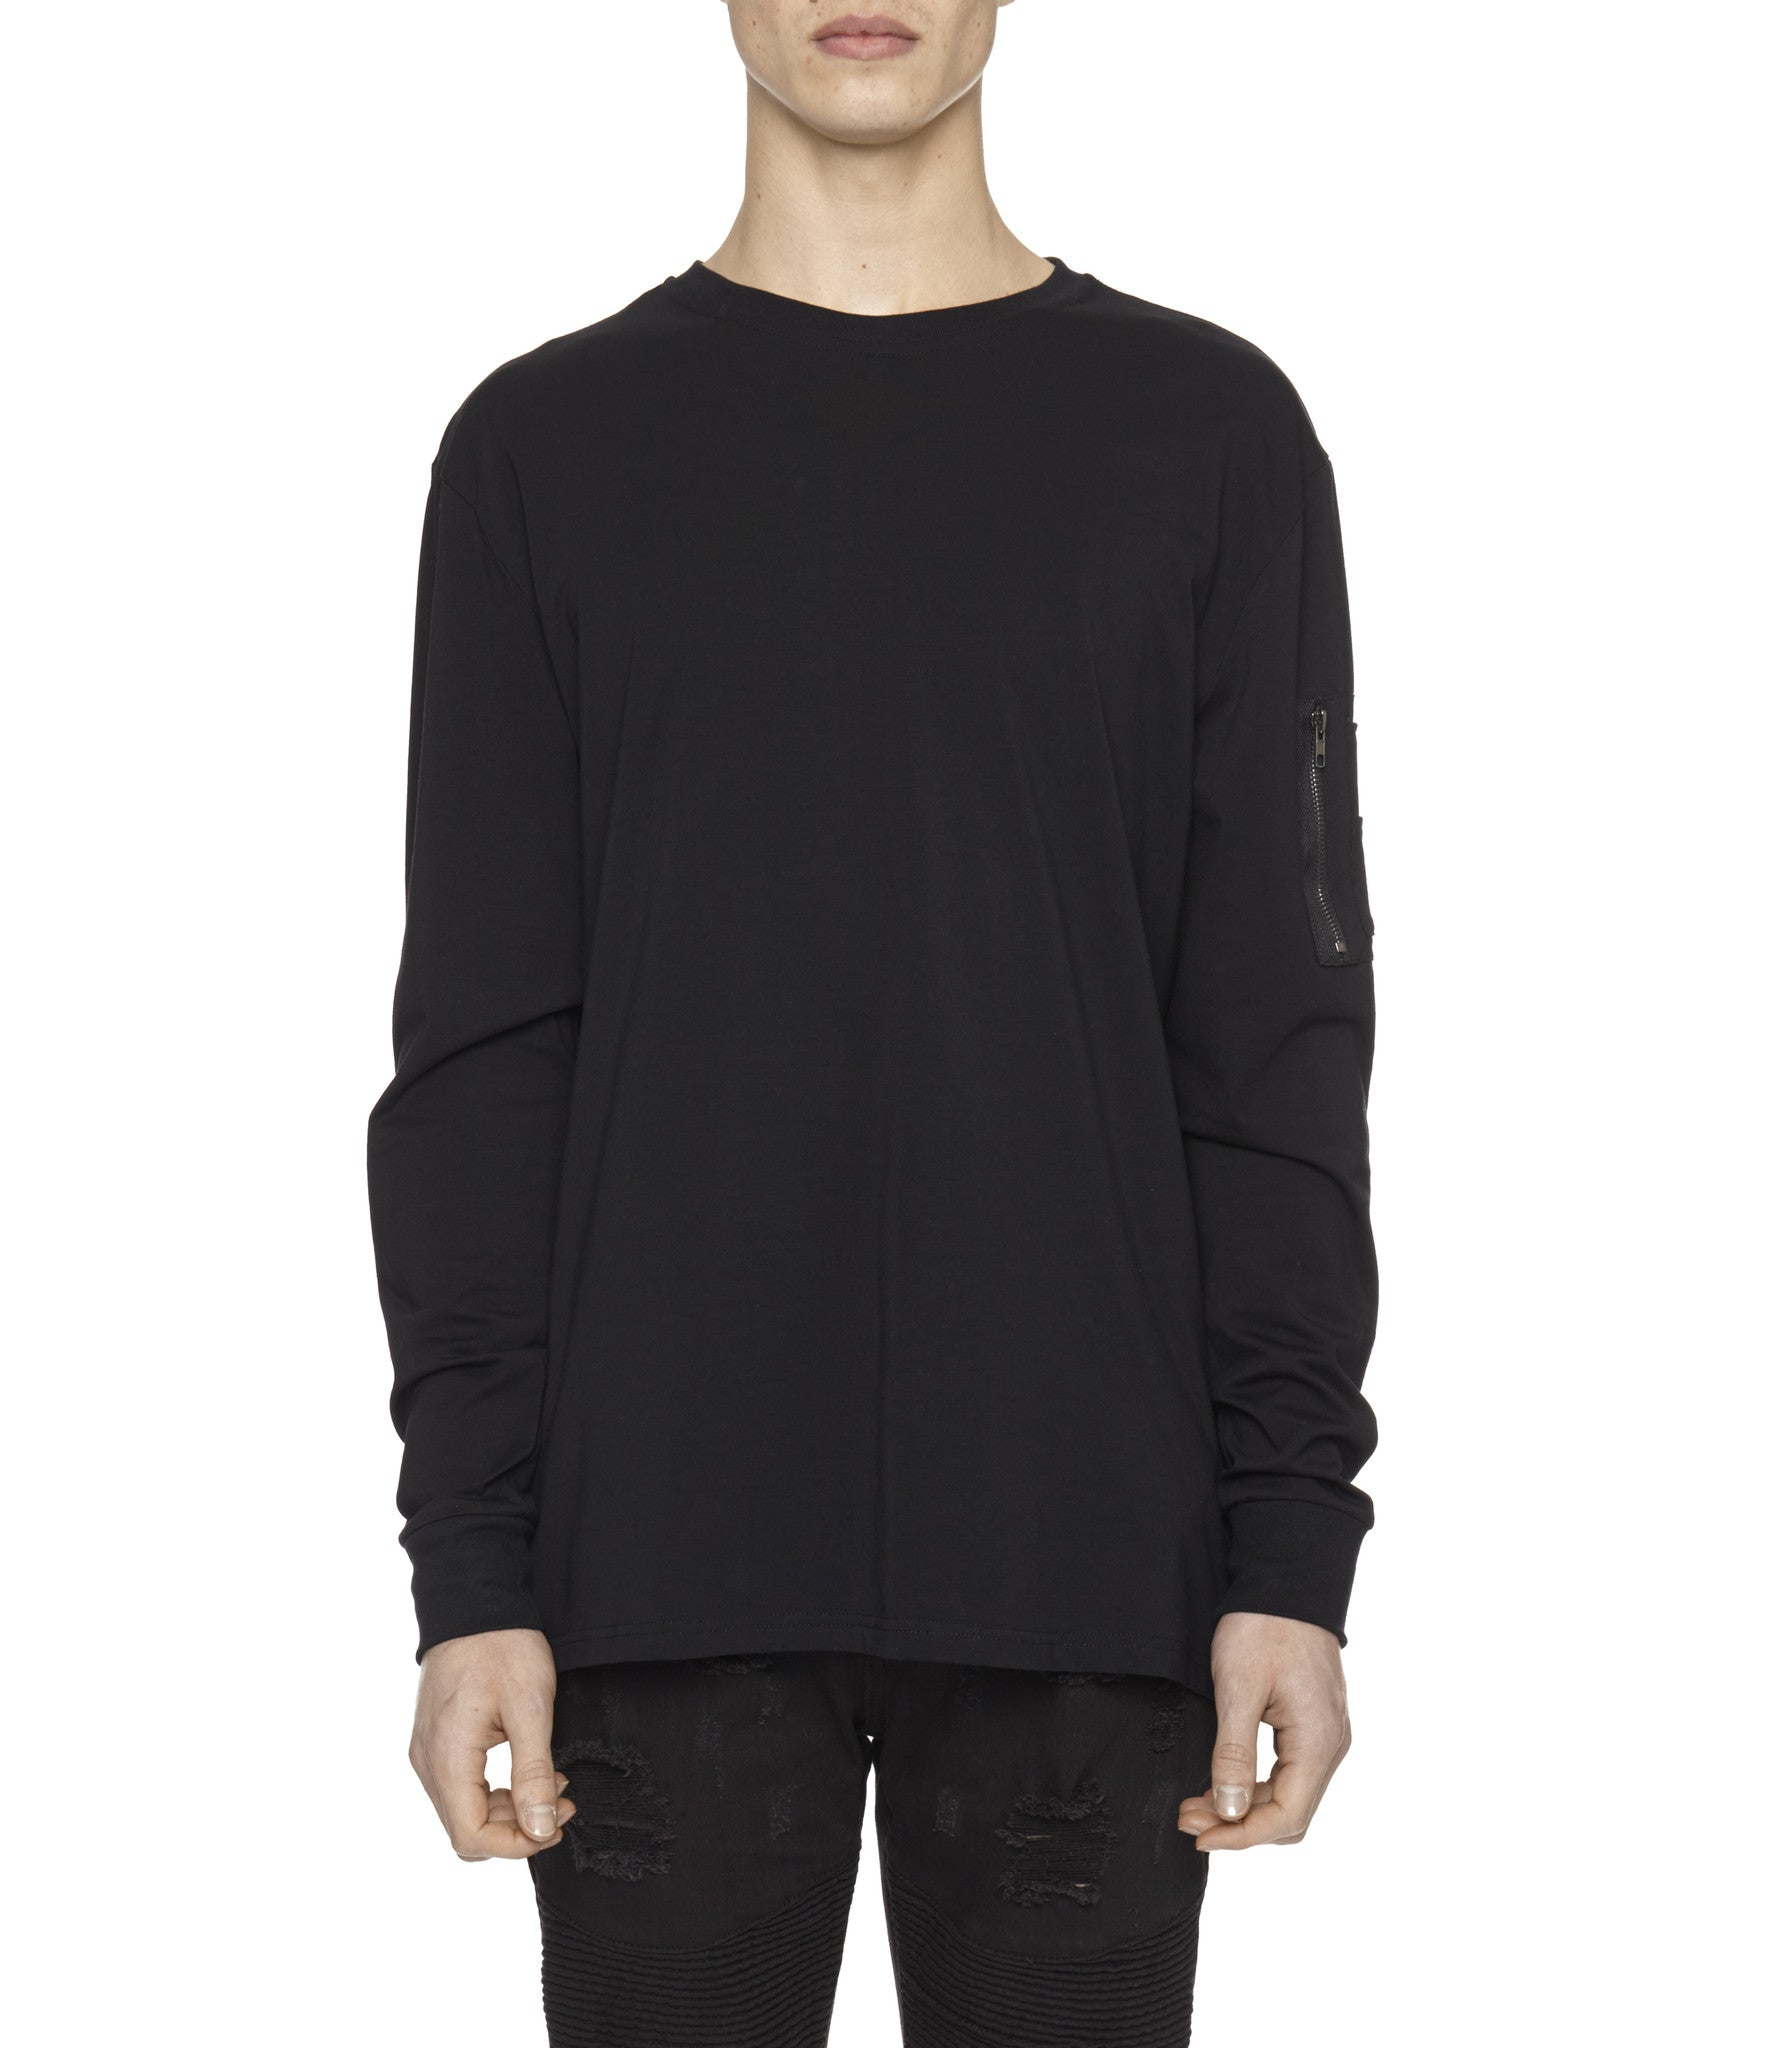 LS303 Utility Long-Sleeve Tee - Black - underated london - underatedco - 4